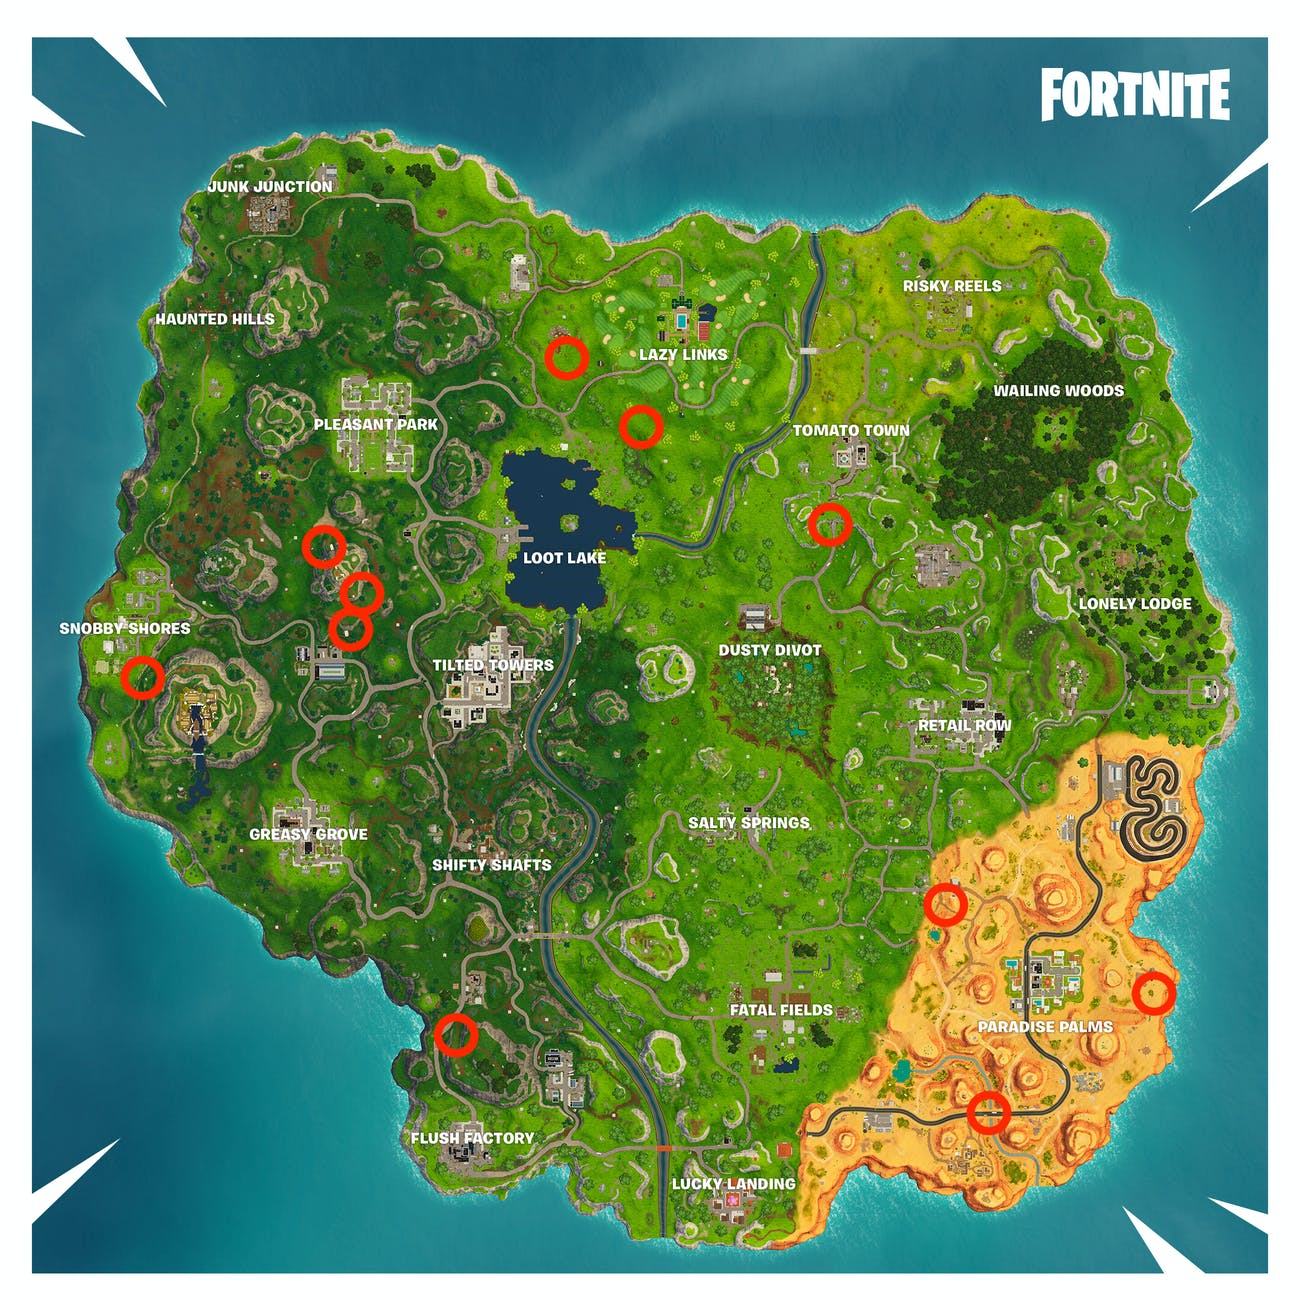 Here are 11 flaming hoops that 'Fortnite' players can jump through in Season 5, Week 4.